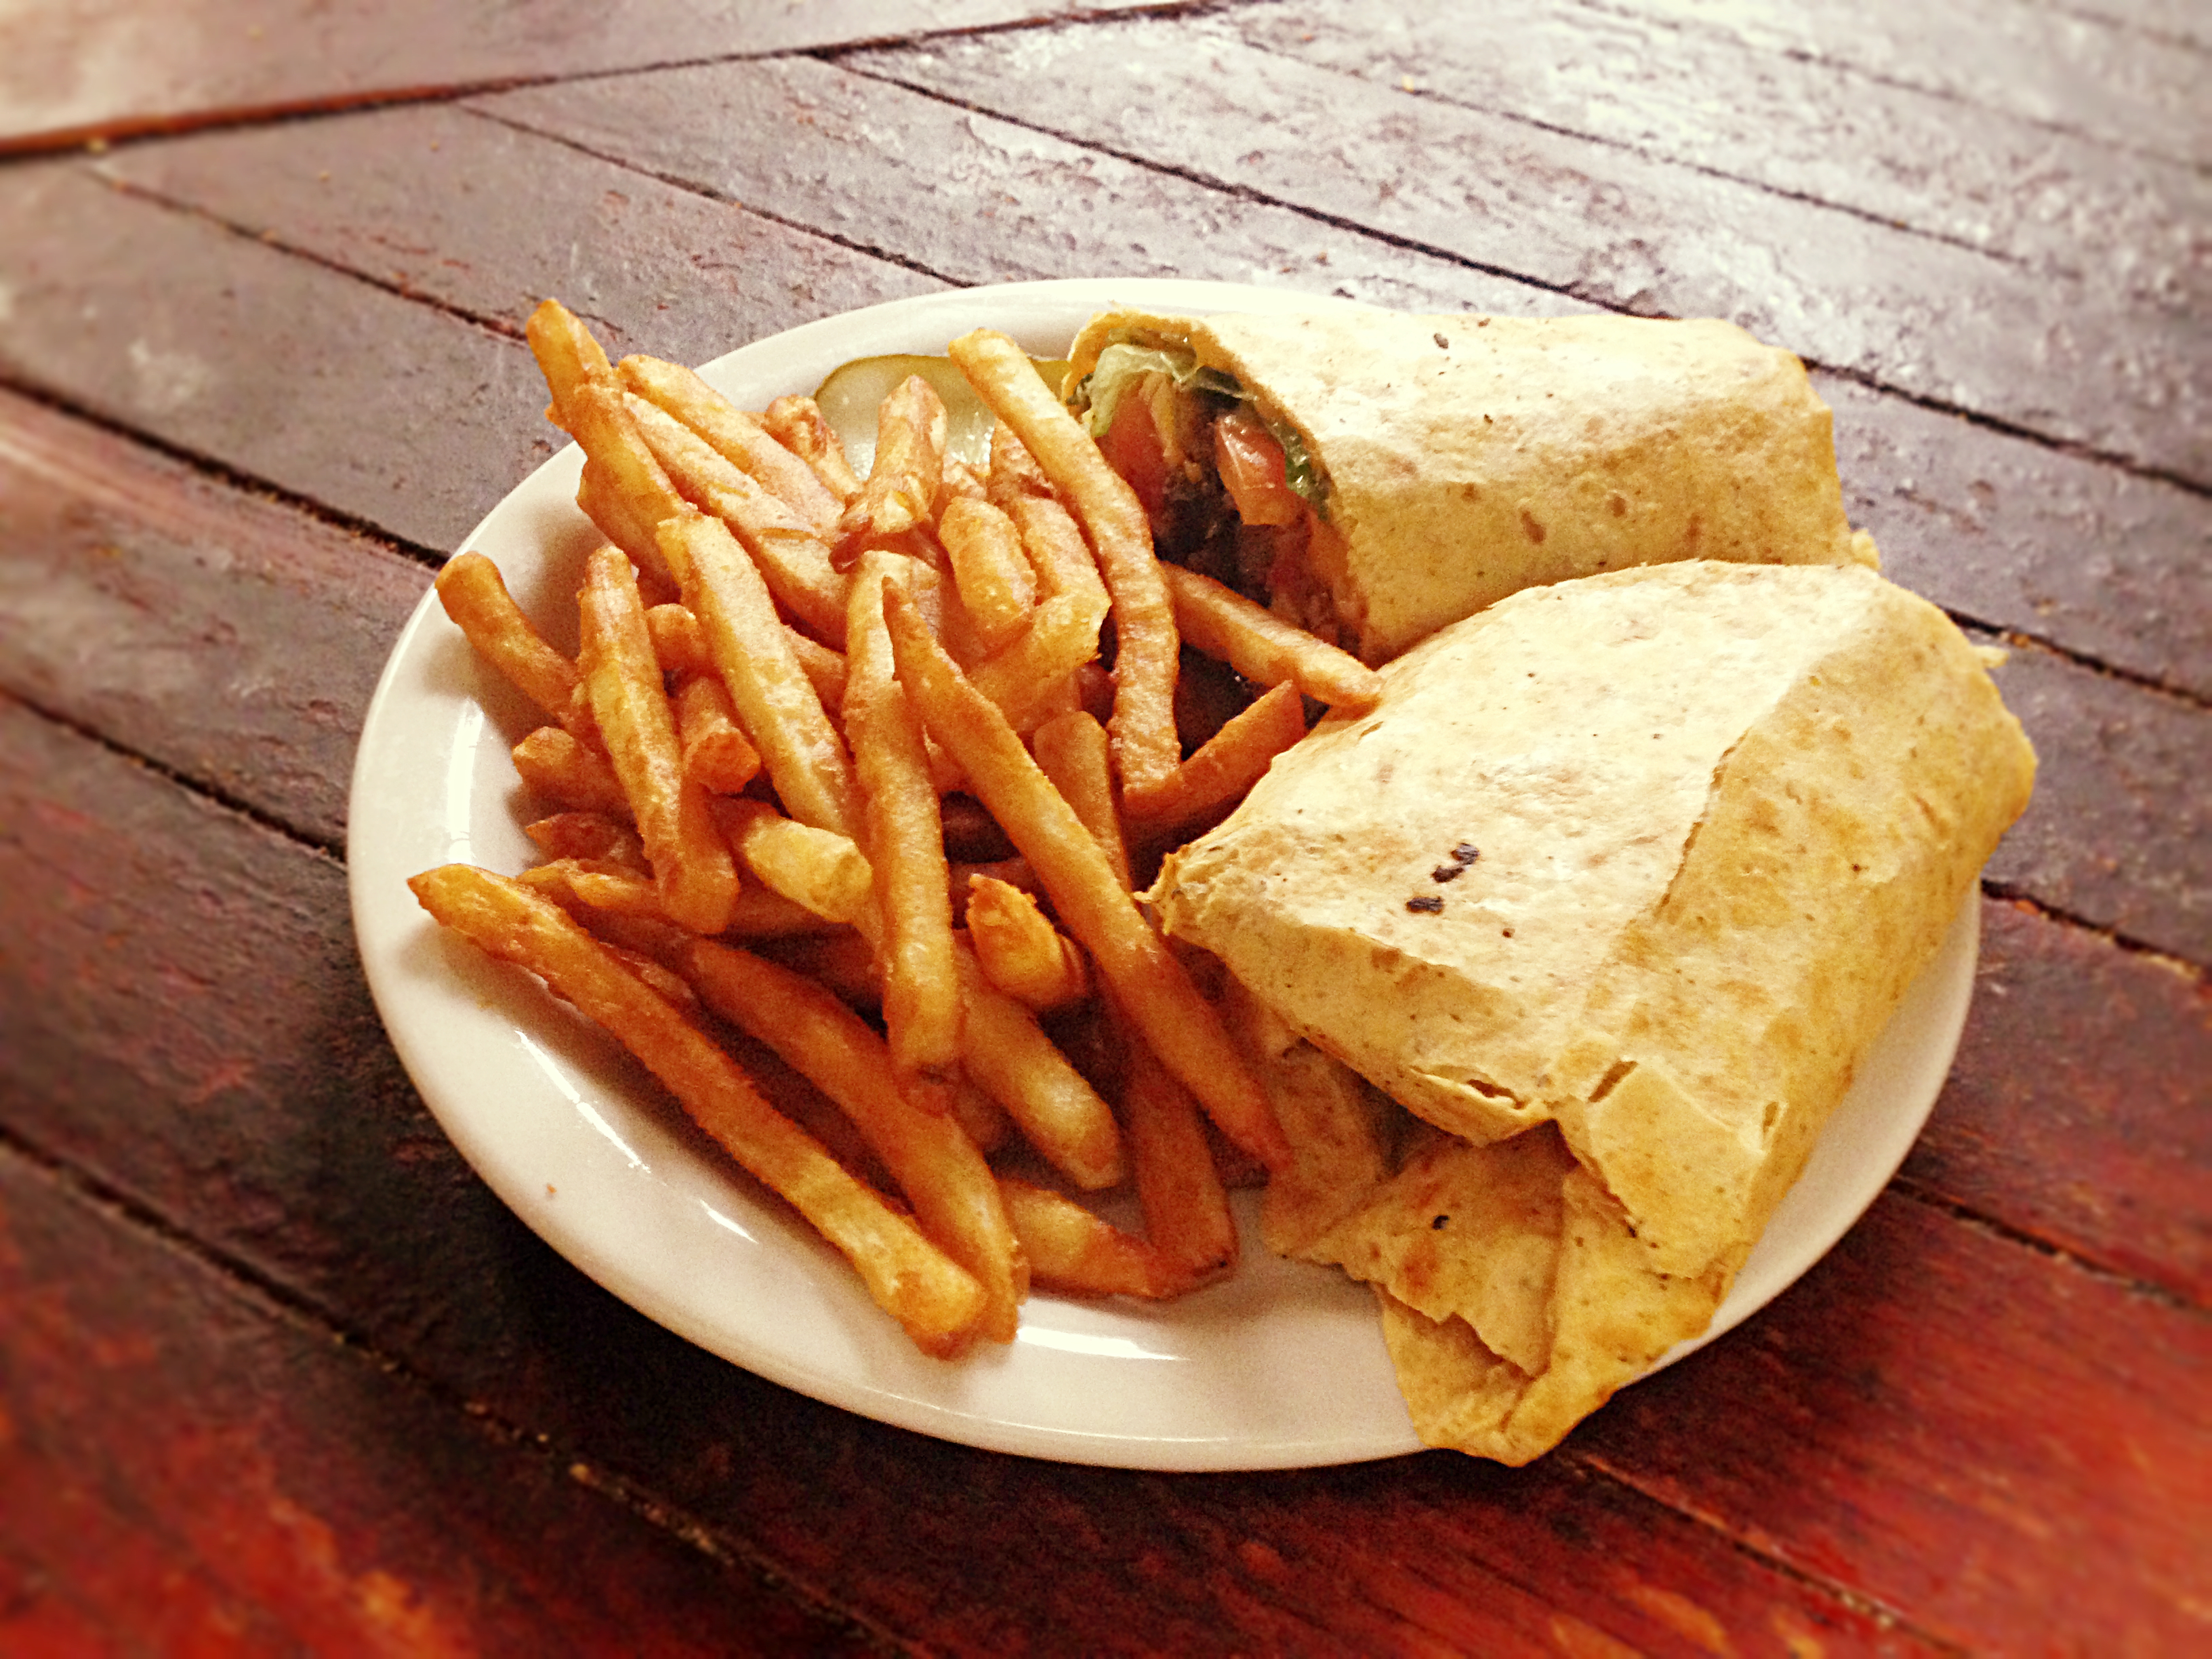 One of our many tasty wraps!